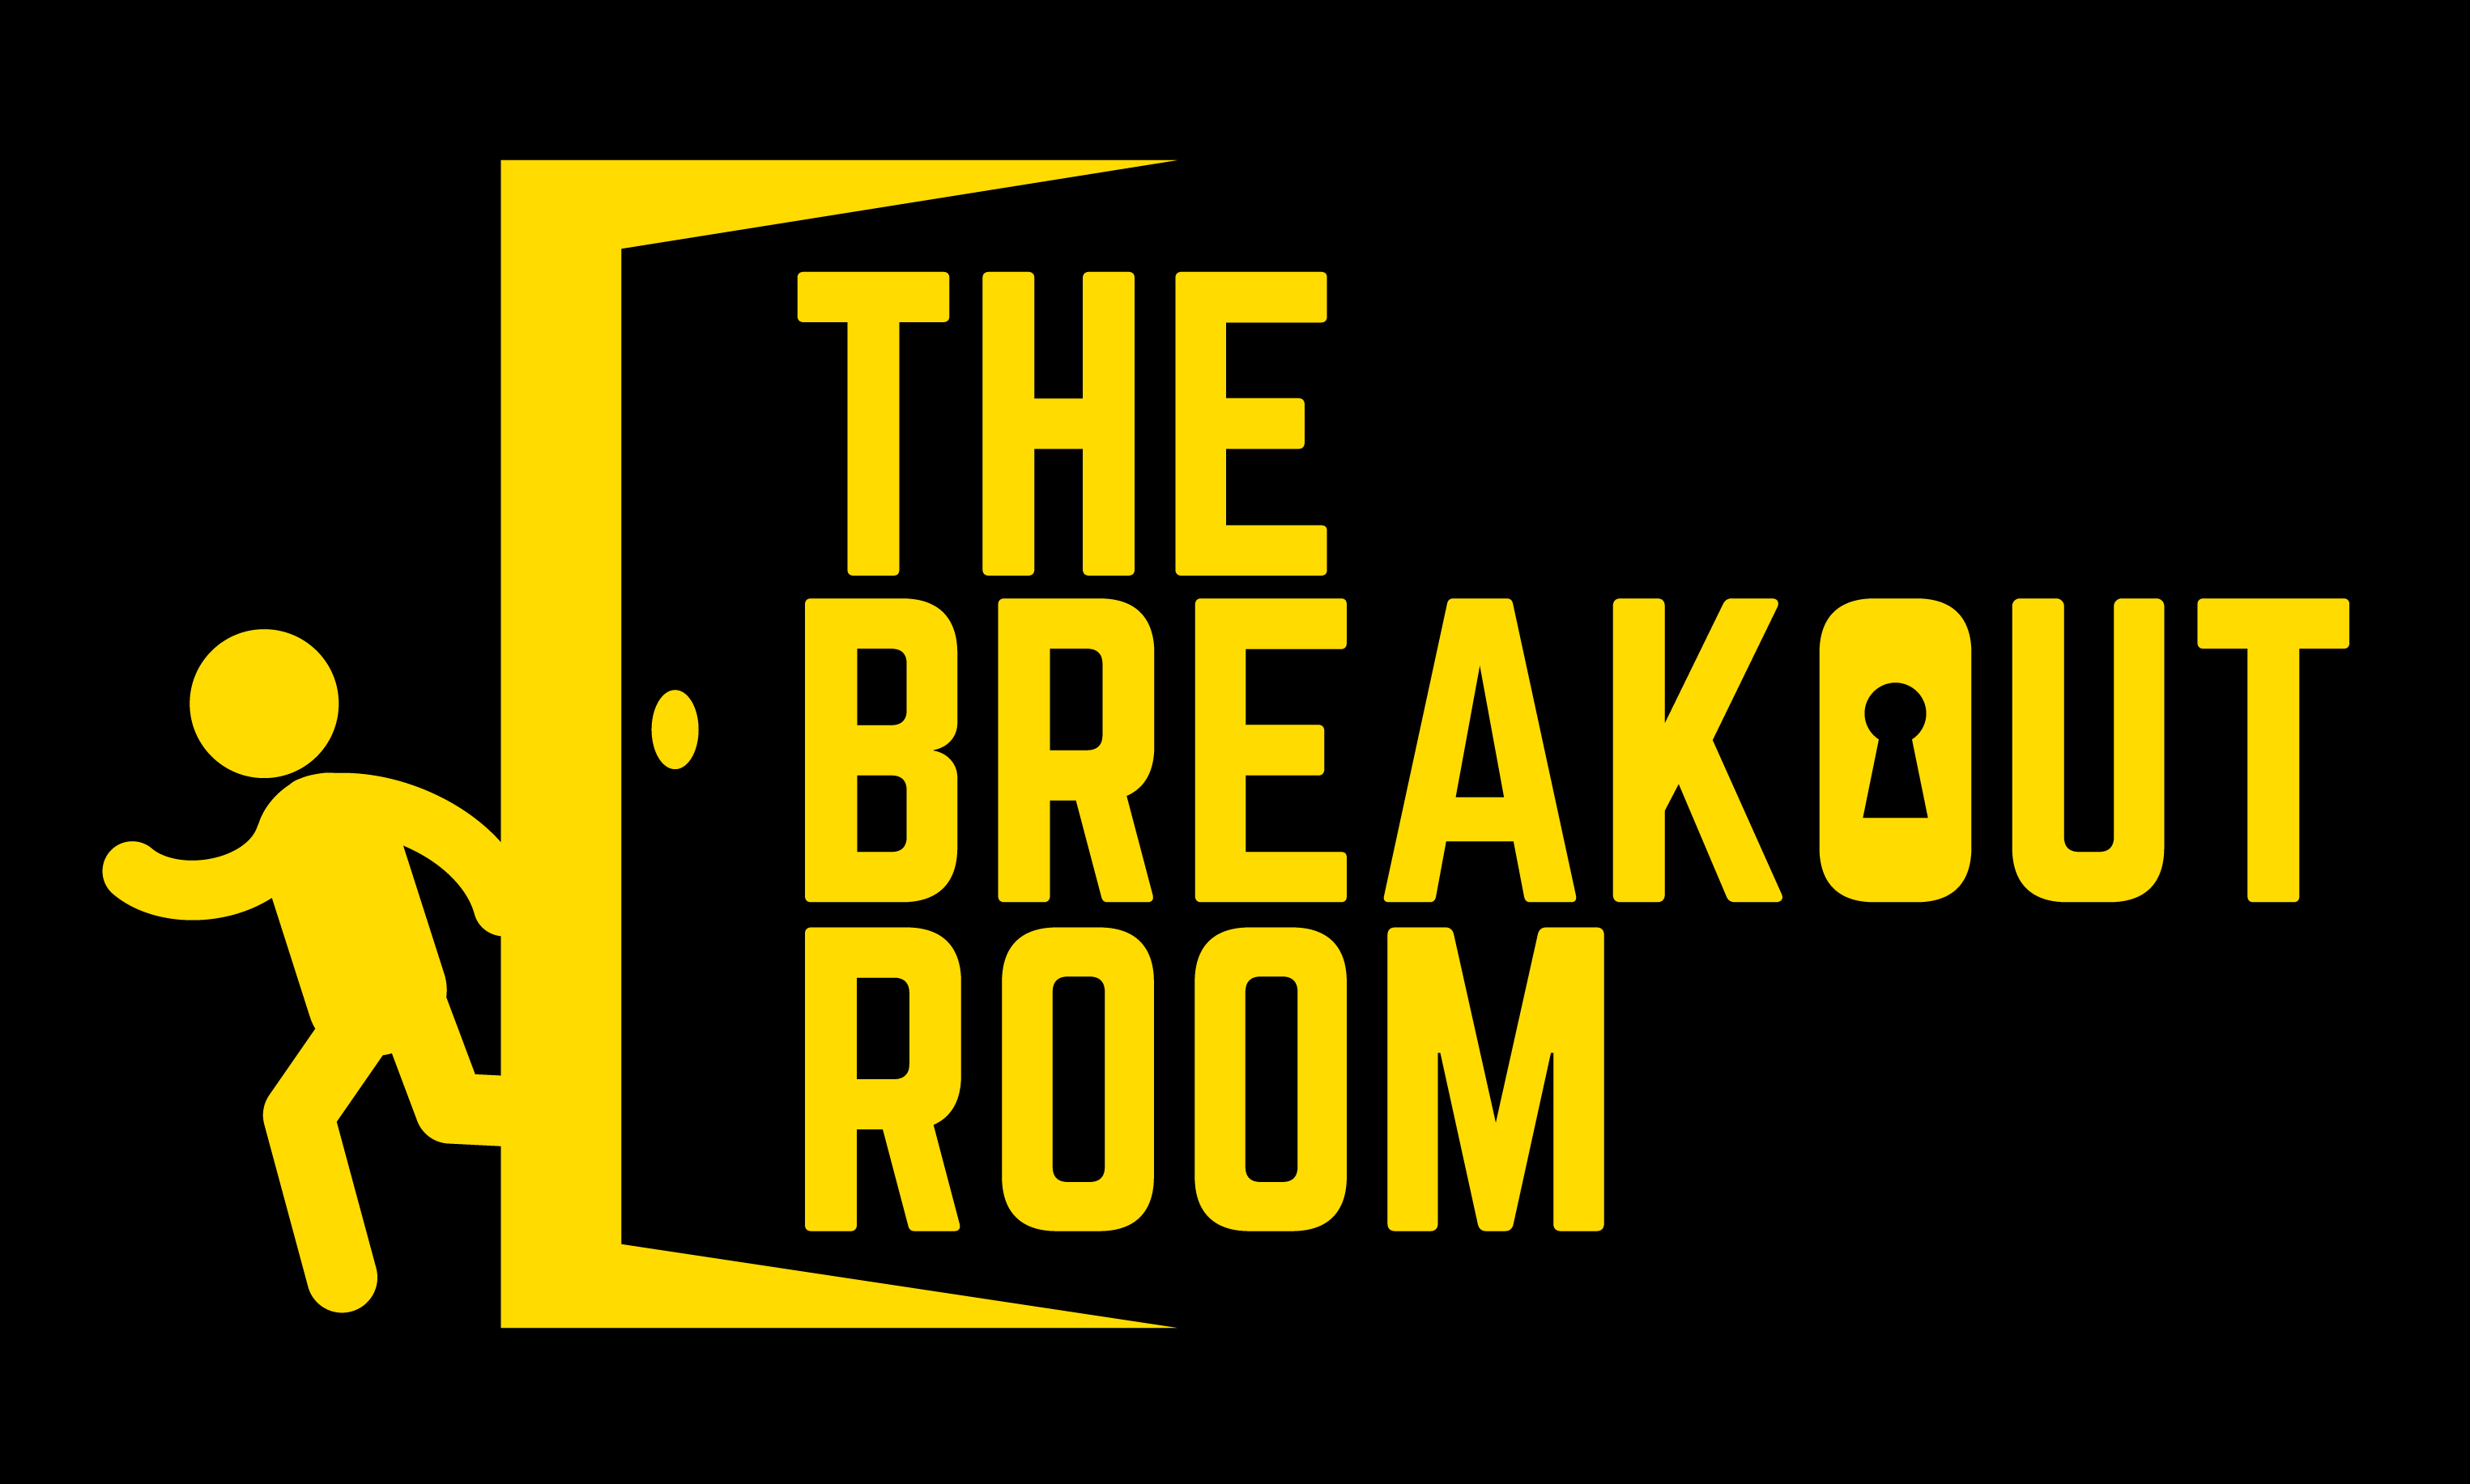 The Breakout Room